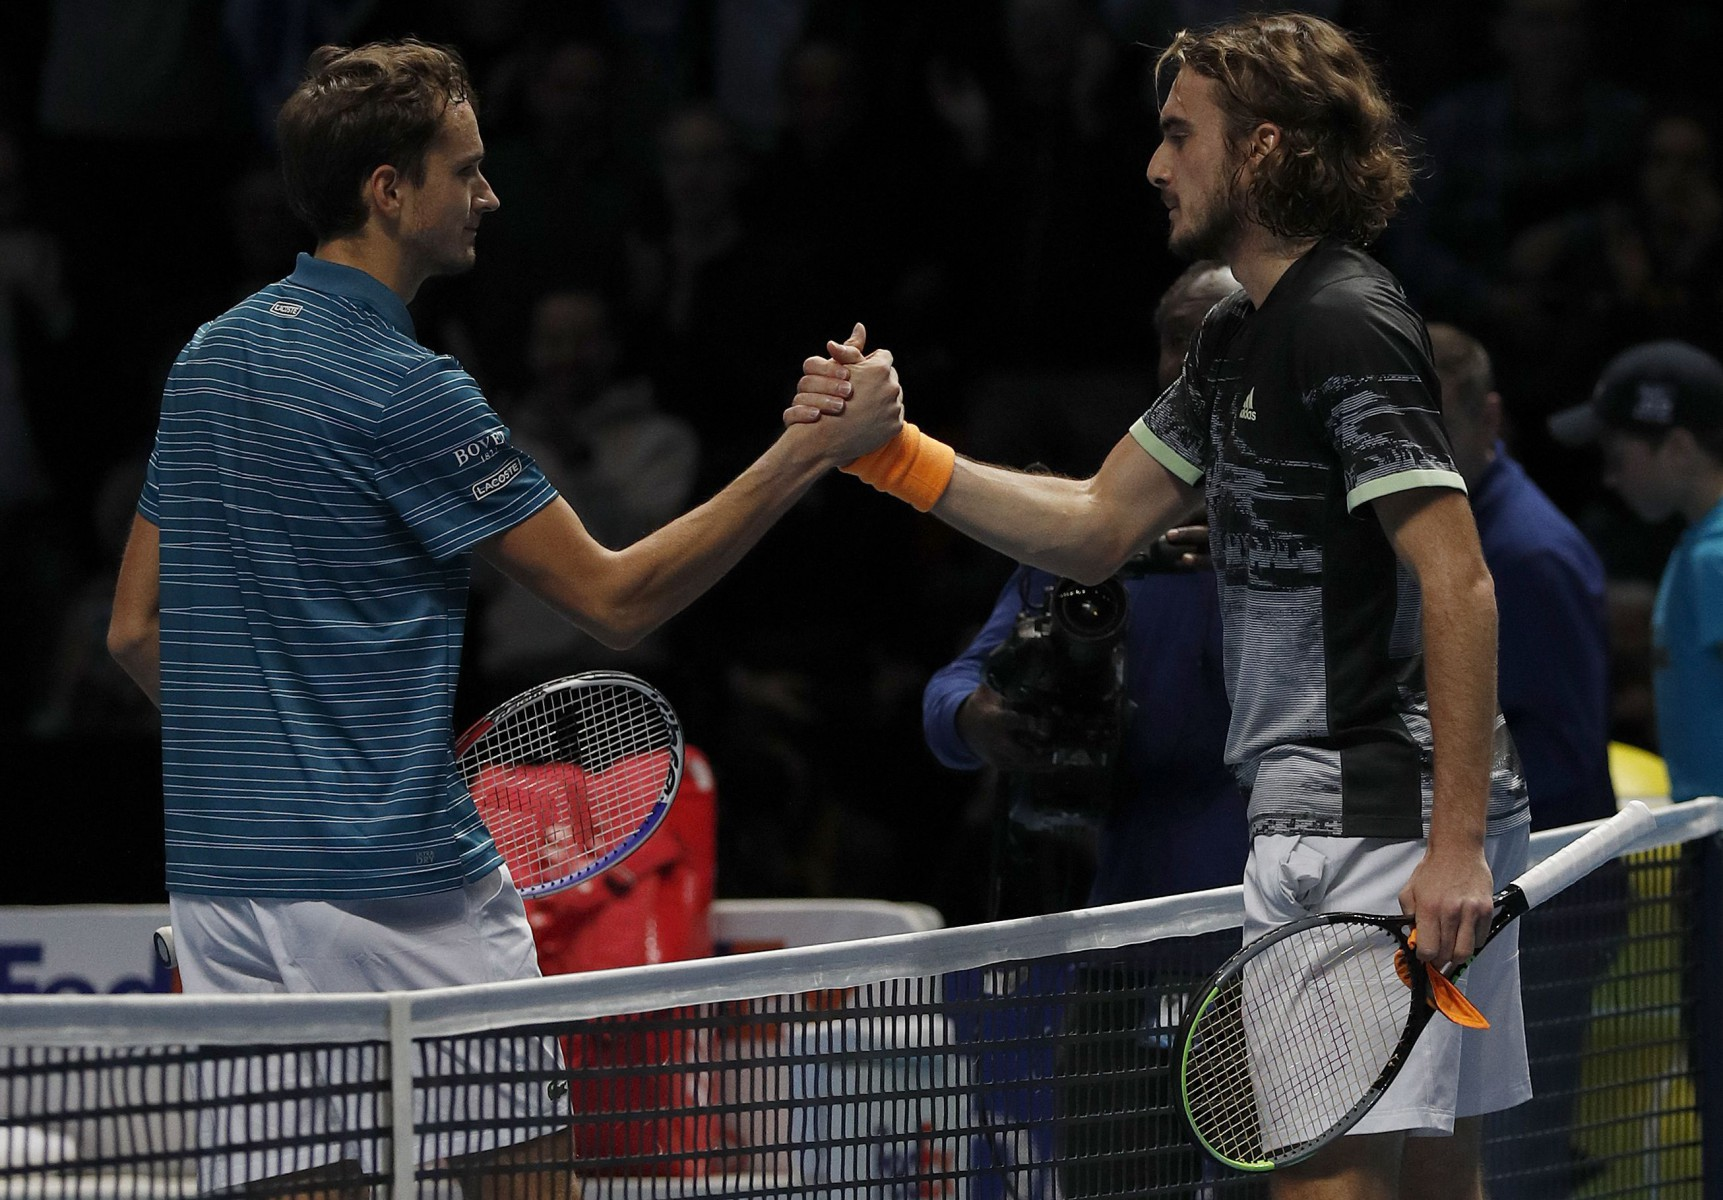 Both players were making their debuts at the season-ending ATP Finals in London